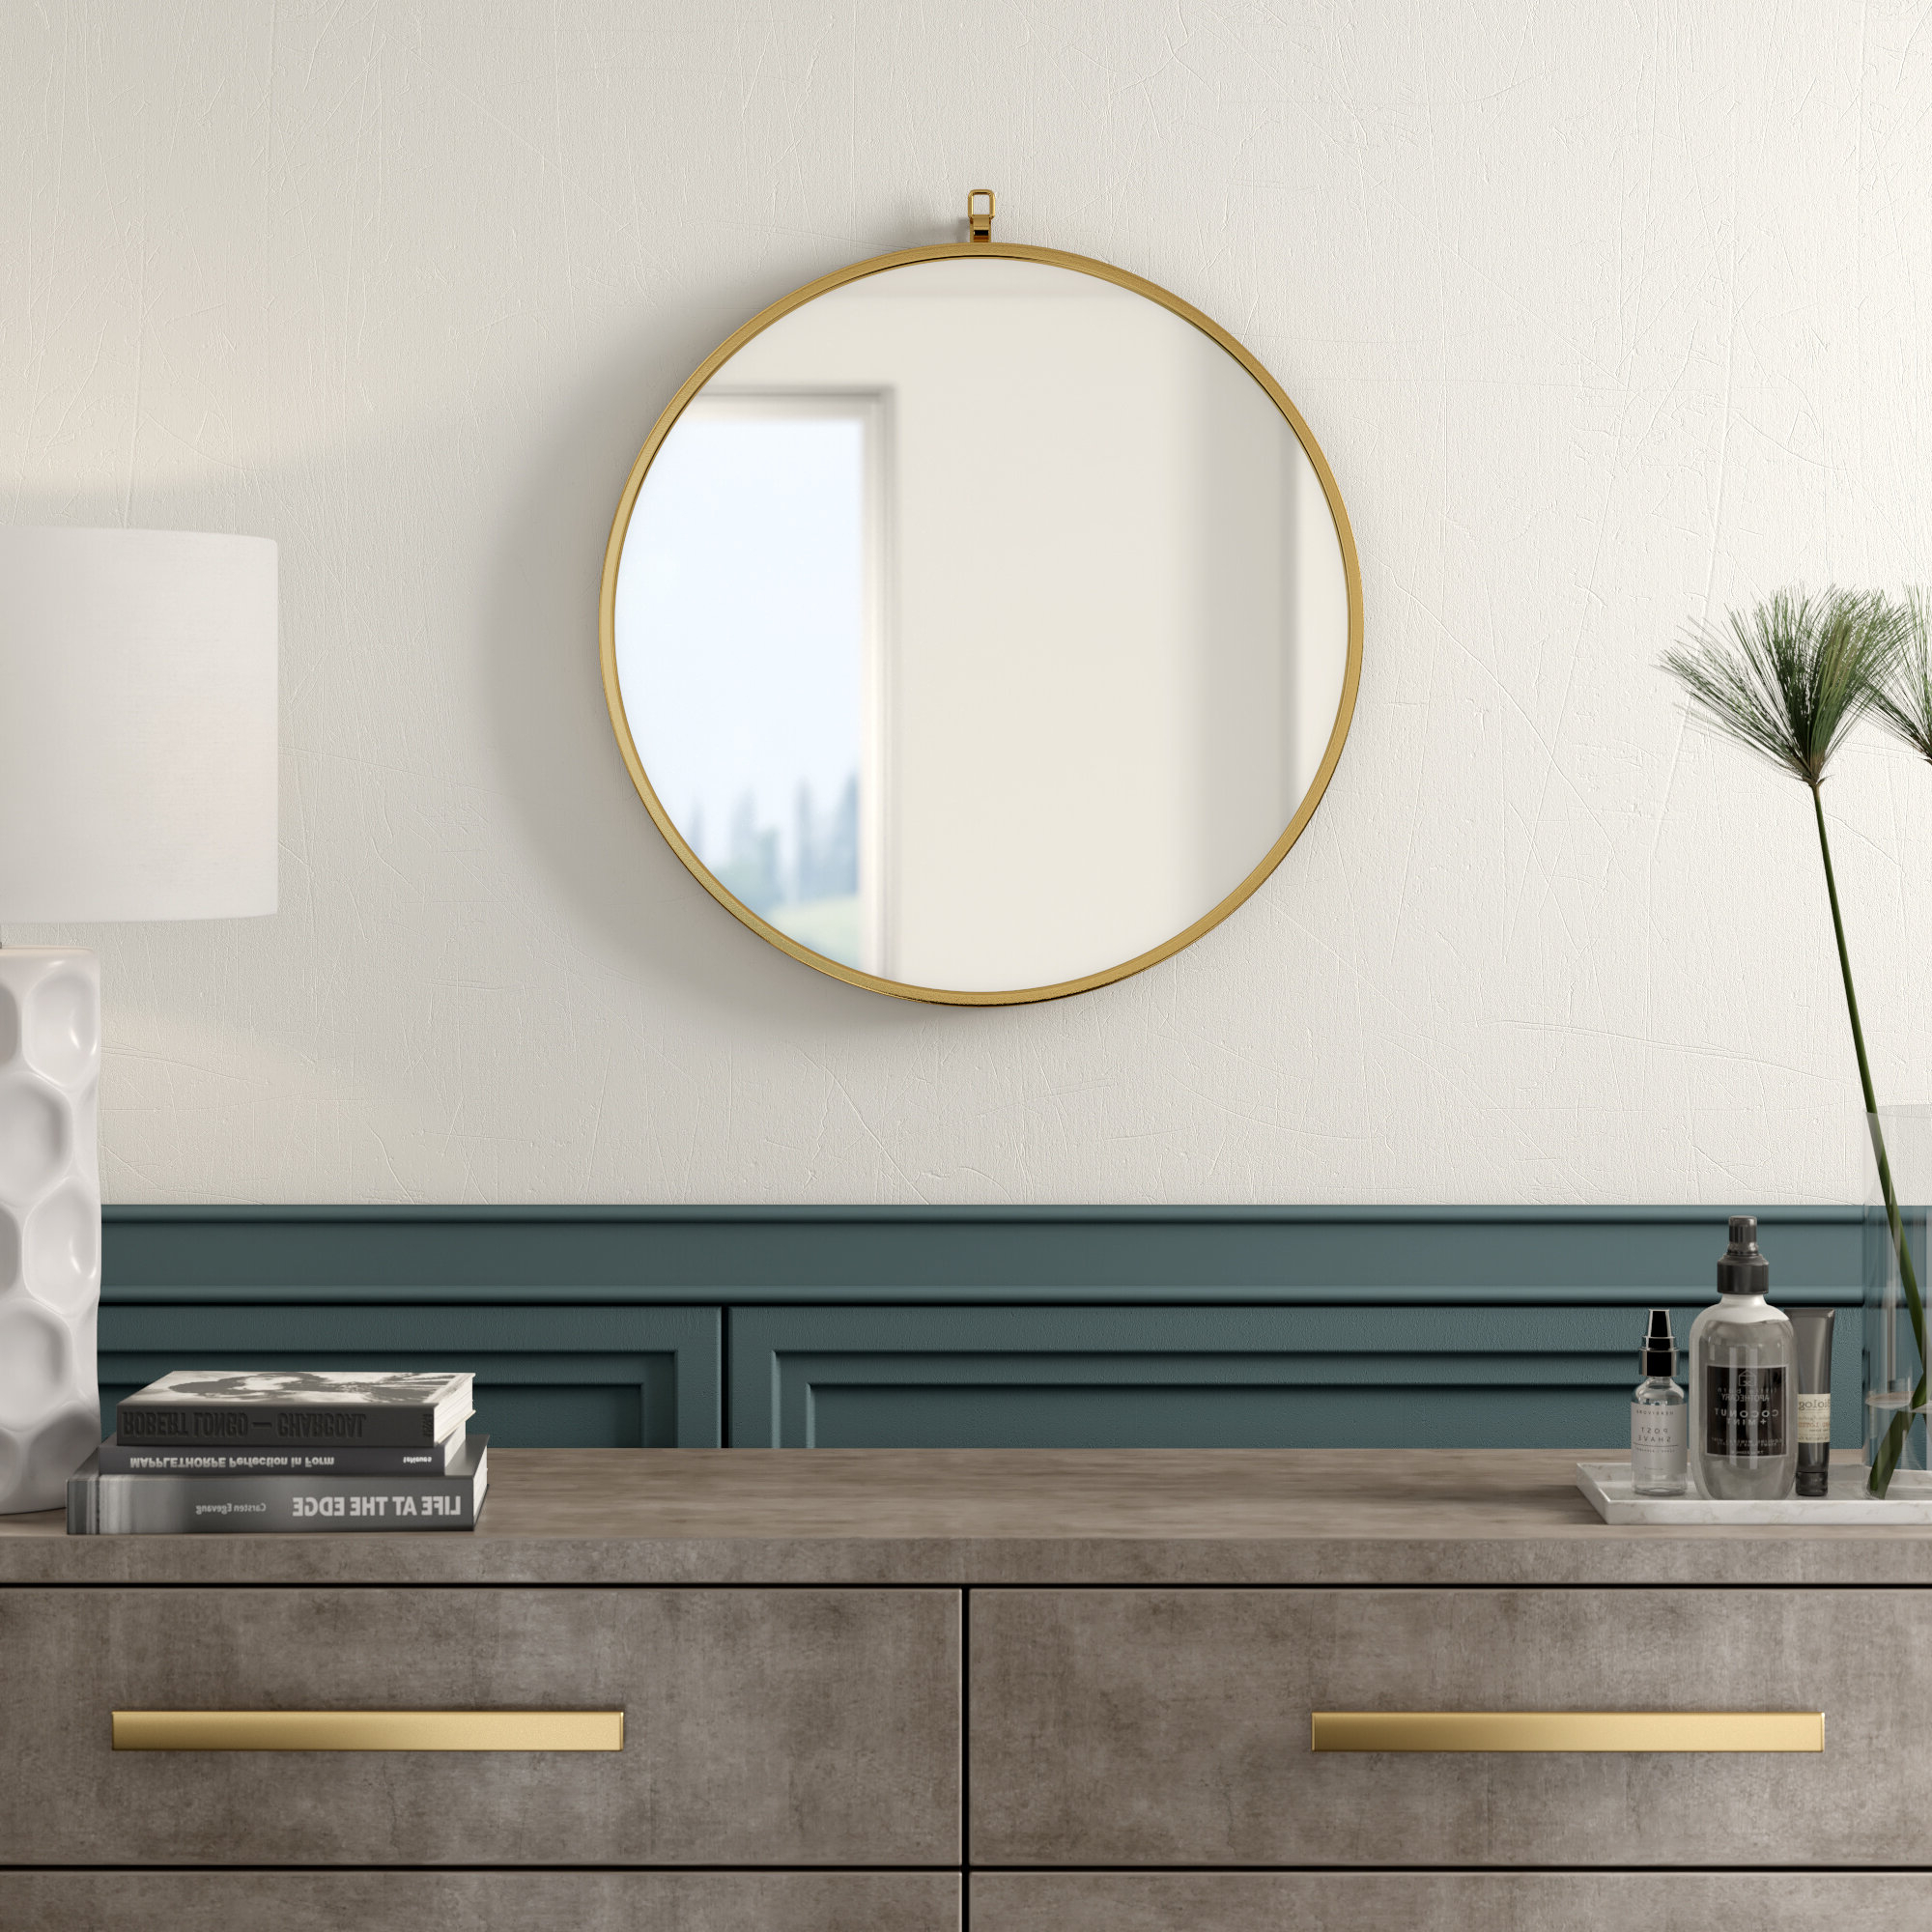 Best And Newest Yedinak Modern And Contemporary Accent Mirror Within Yedinak Modern Distressed Accent Mirrors (View 2 of 20)